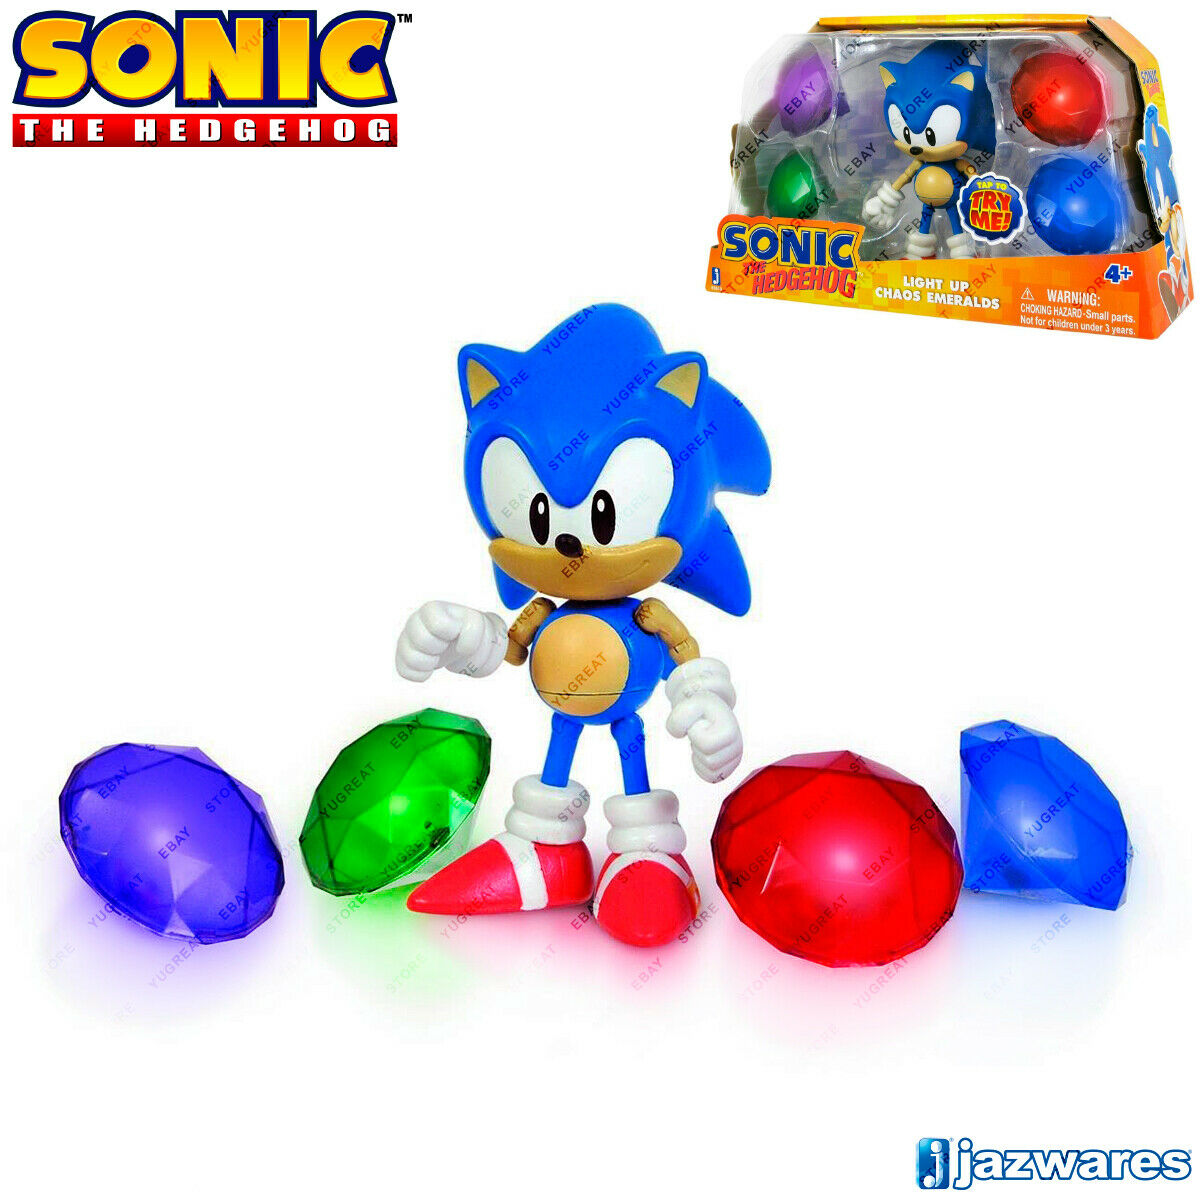 SONIC The Hedgehog 65910 Sonic Light Up Chaos Emeralds, Collection Figure